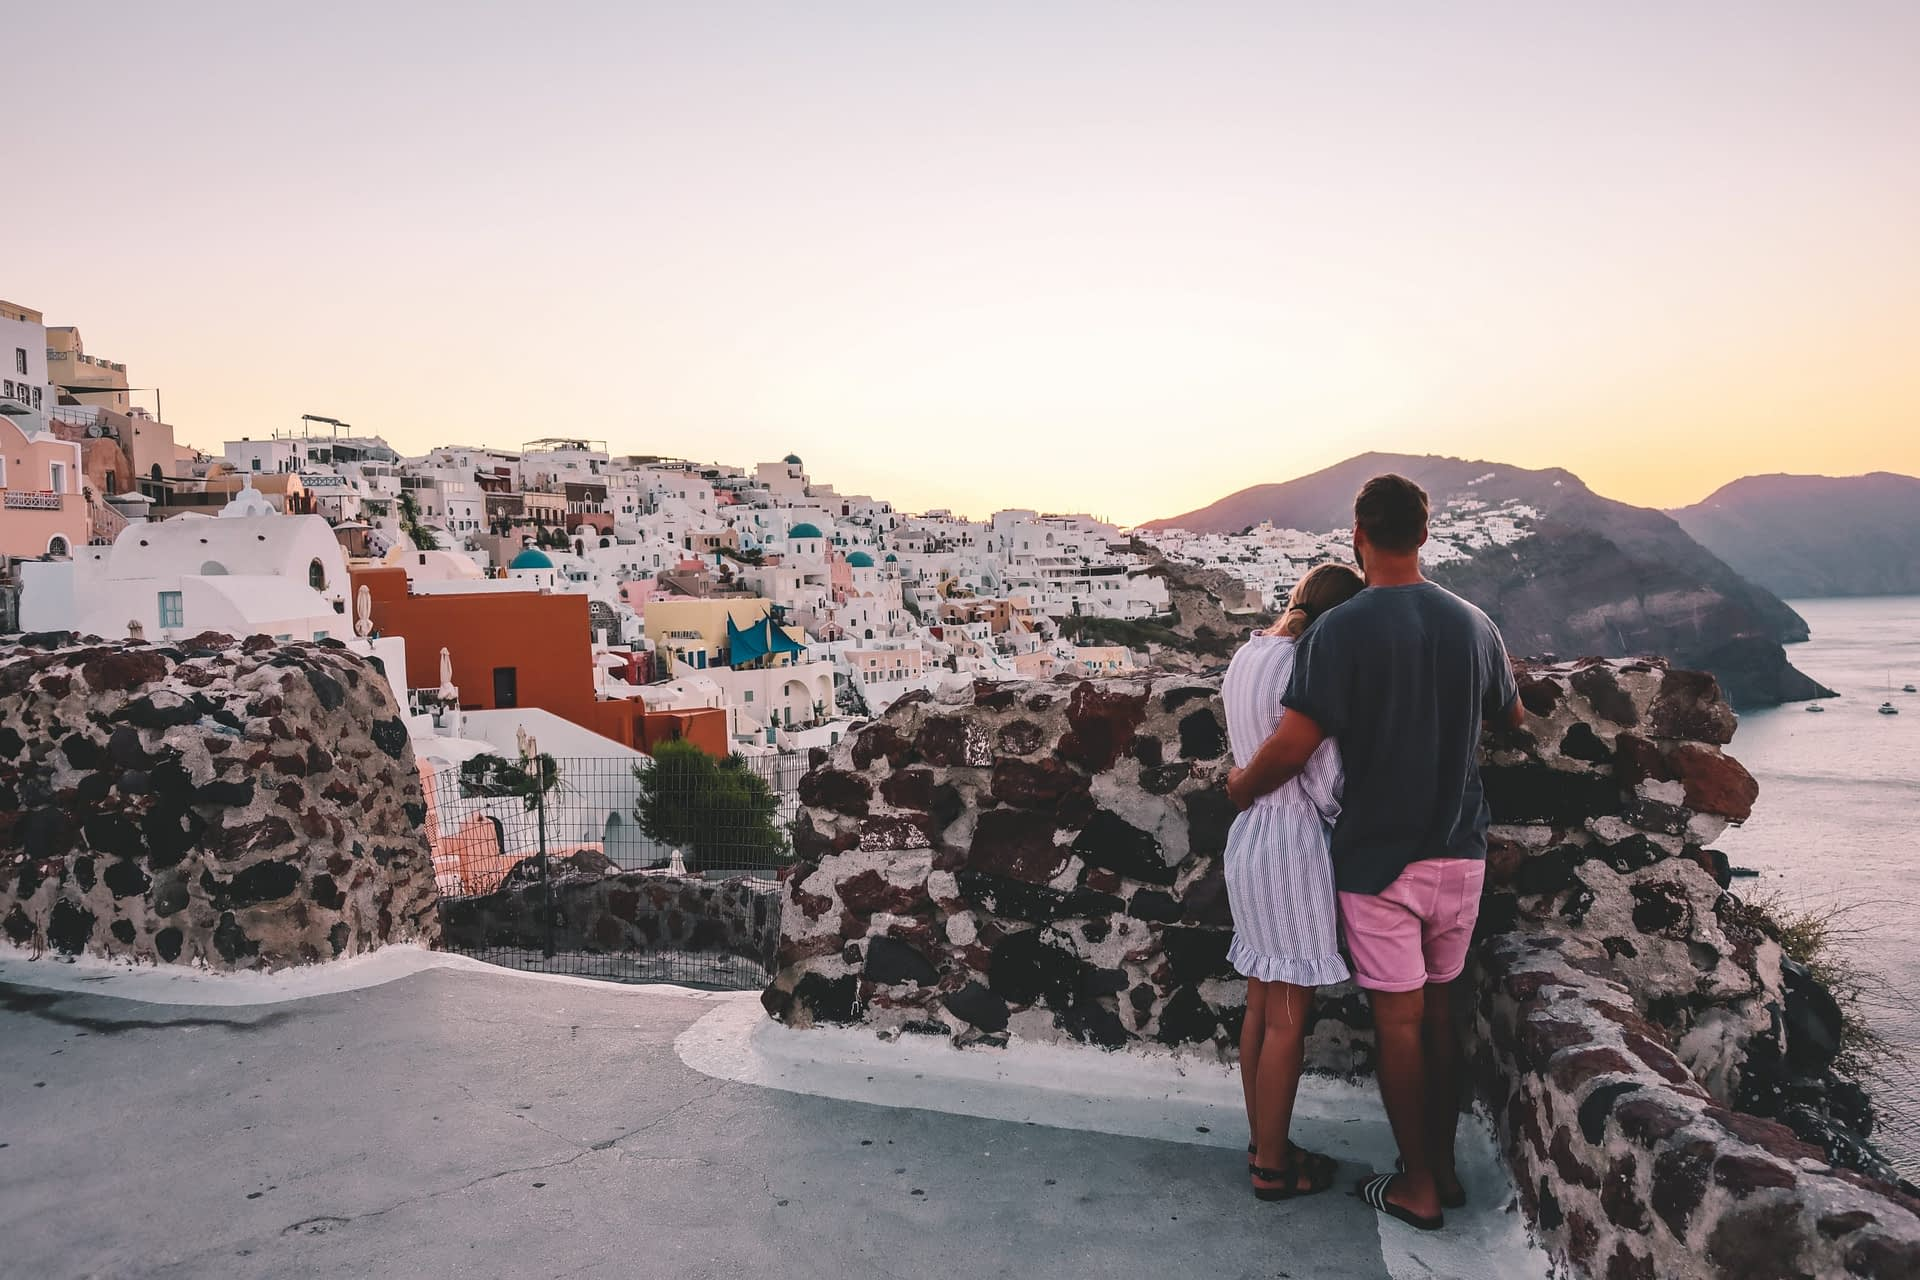 A couple stood watching the sunrise over Oia in Santorini.